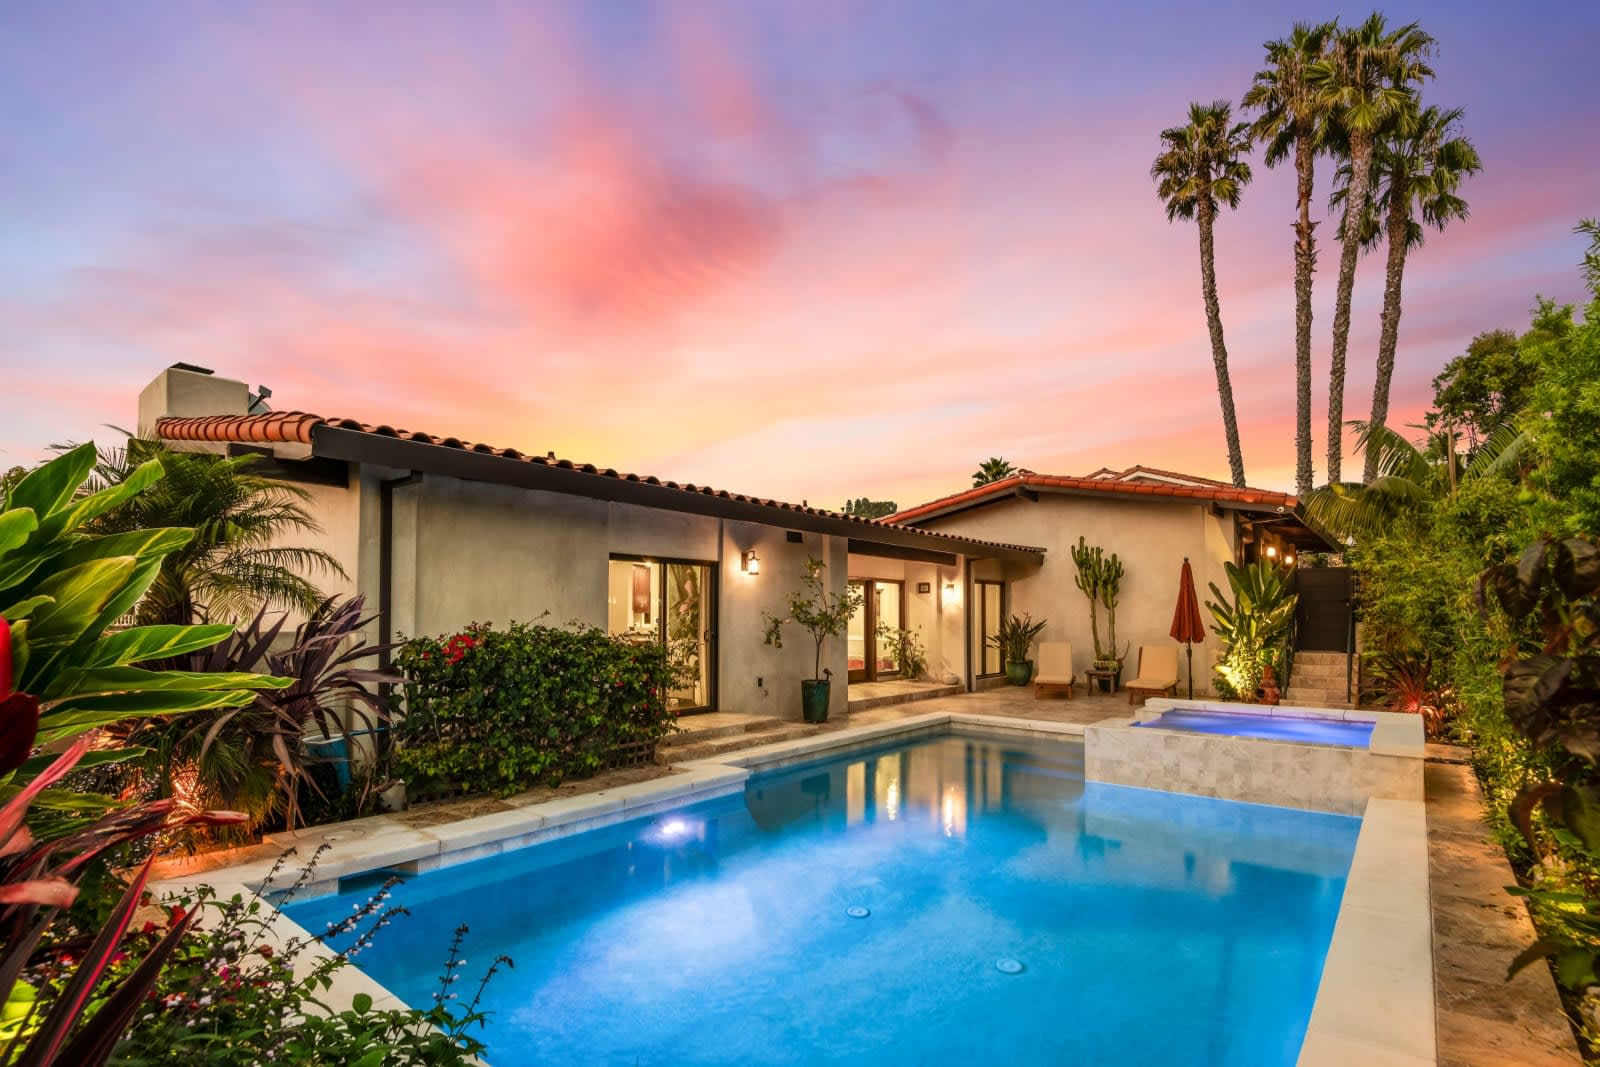 Homes with Pools image